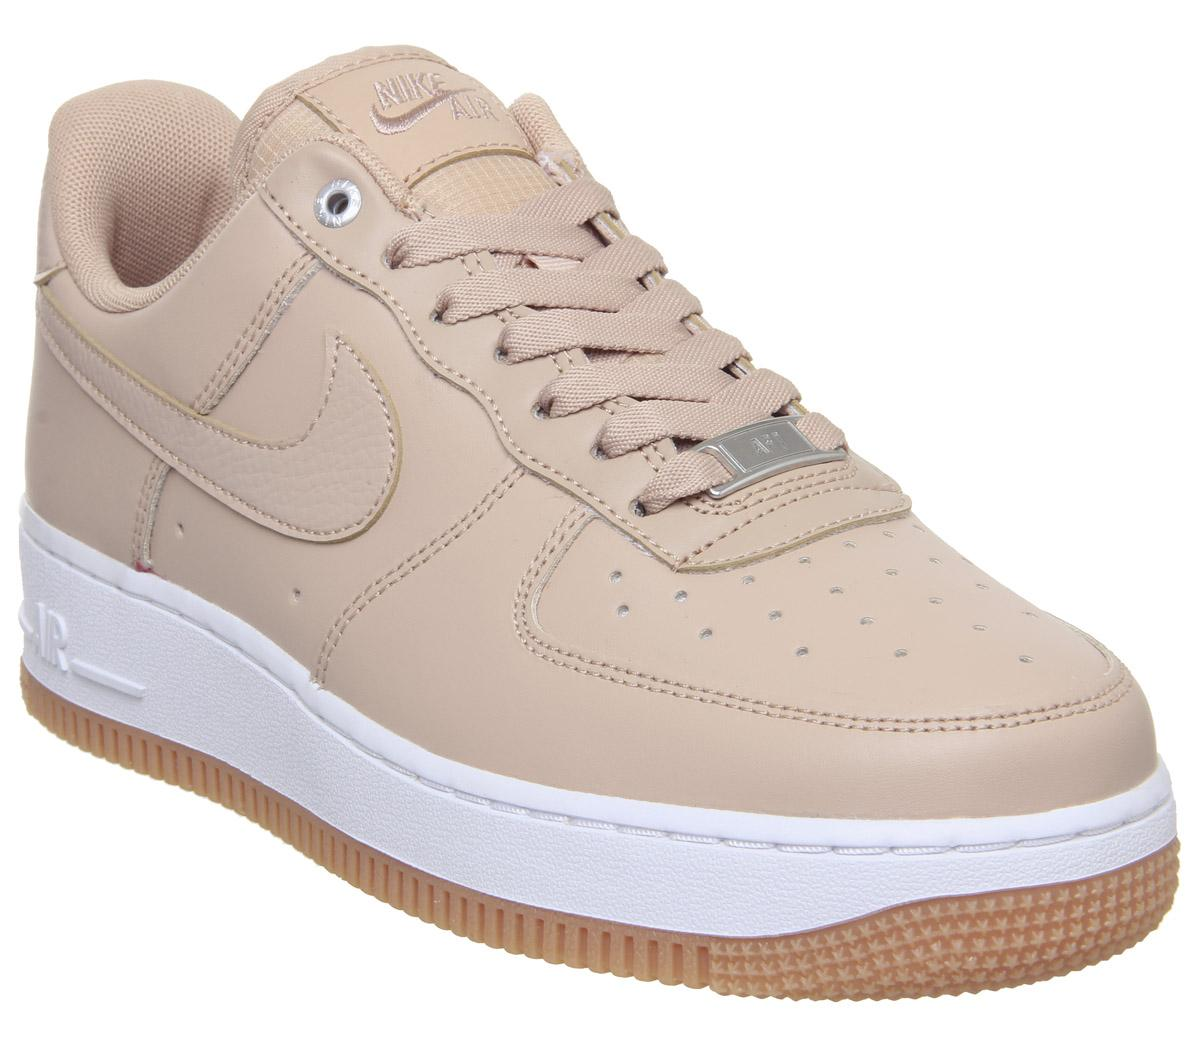 Actualizar desesperación noche  Nike Air Force 1 07 Trainers Bio Beige Metallic Silver Gum Med Brown White  - Hers trainers